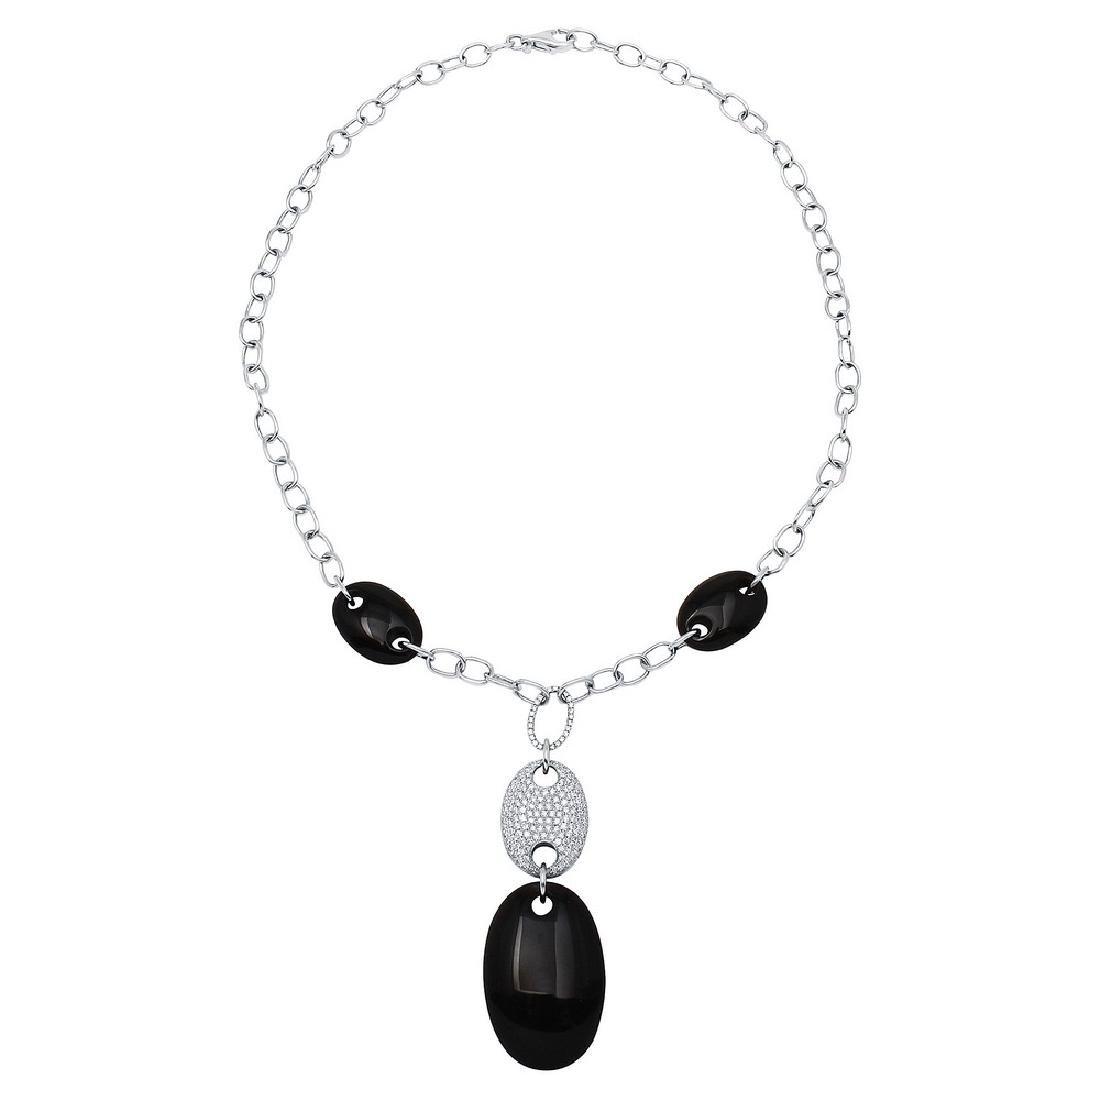 14KT White Gold 60.58ctw Onyx and Diamond Necklace